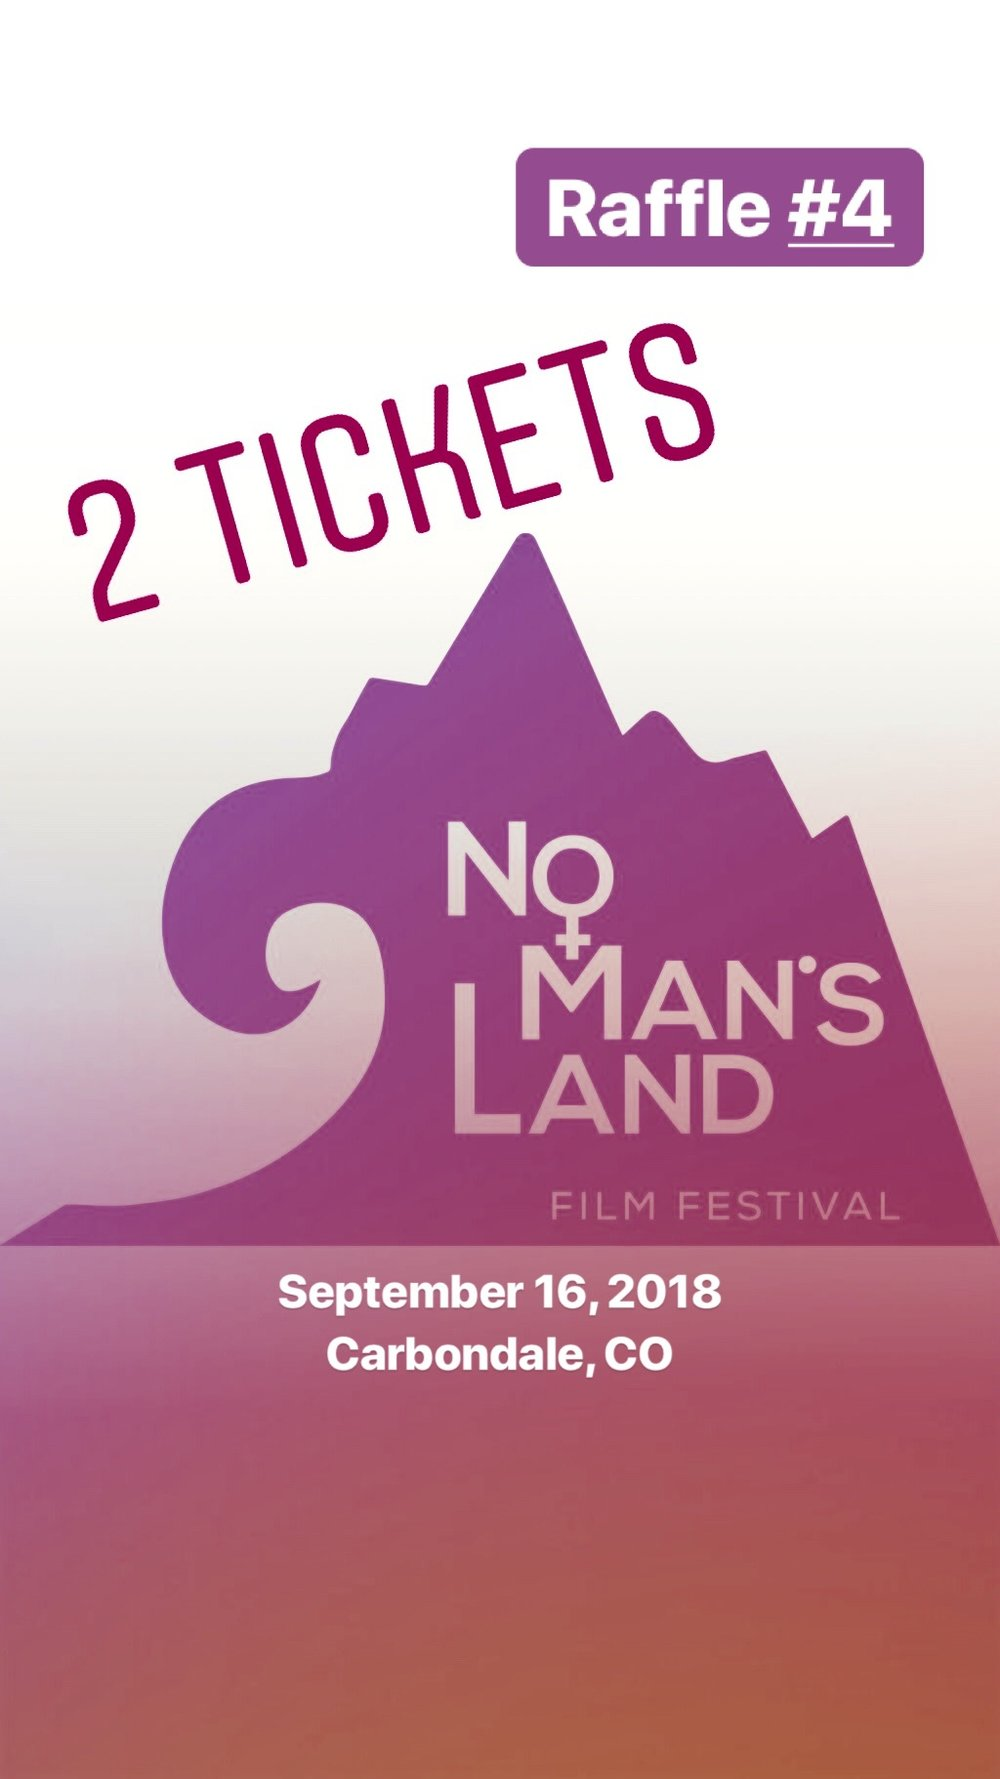 Raffle Prize #4 - Two tickets to the No Man's Land Film Festival in Carbondale, CO on September 16th 2018!